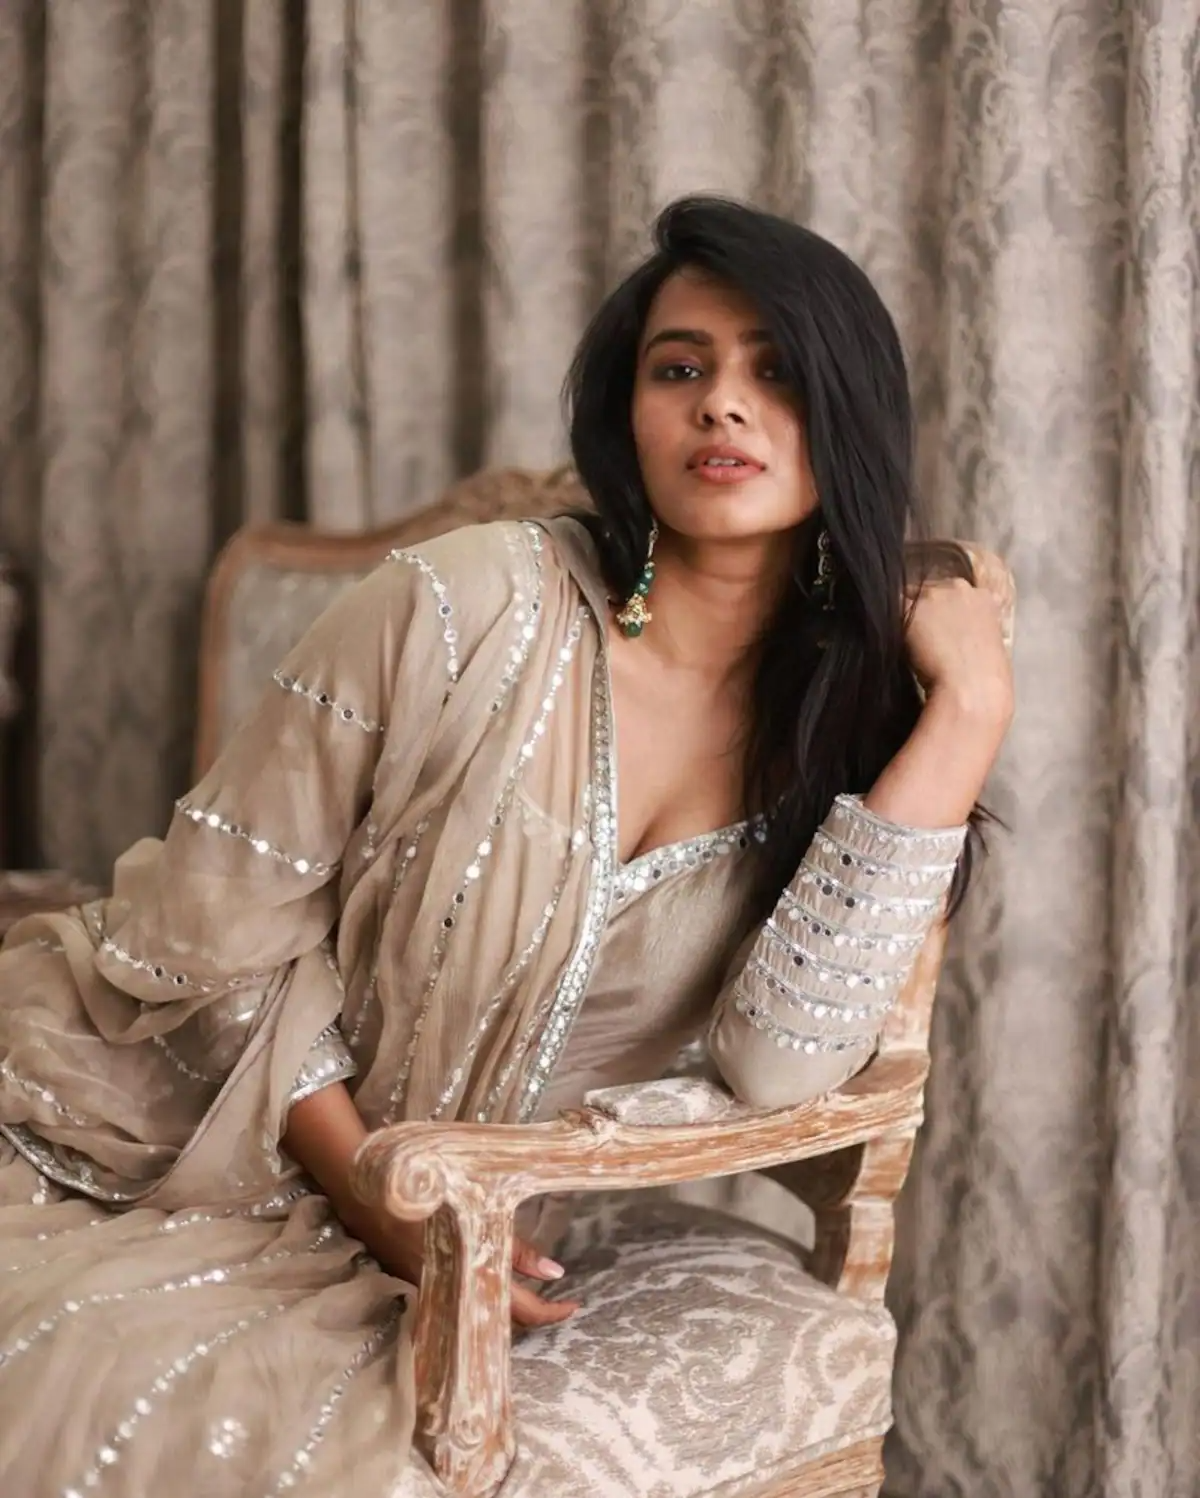 Hebah Patel at her sensuous best in these hot pictures